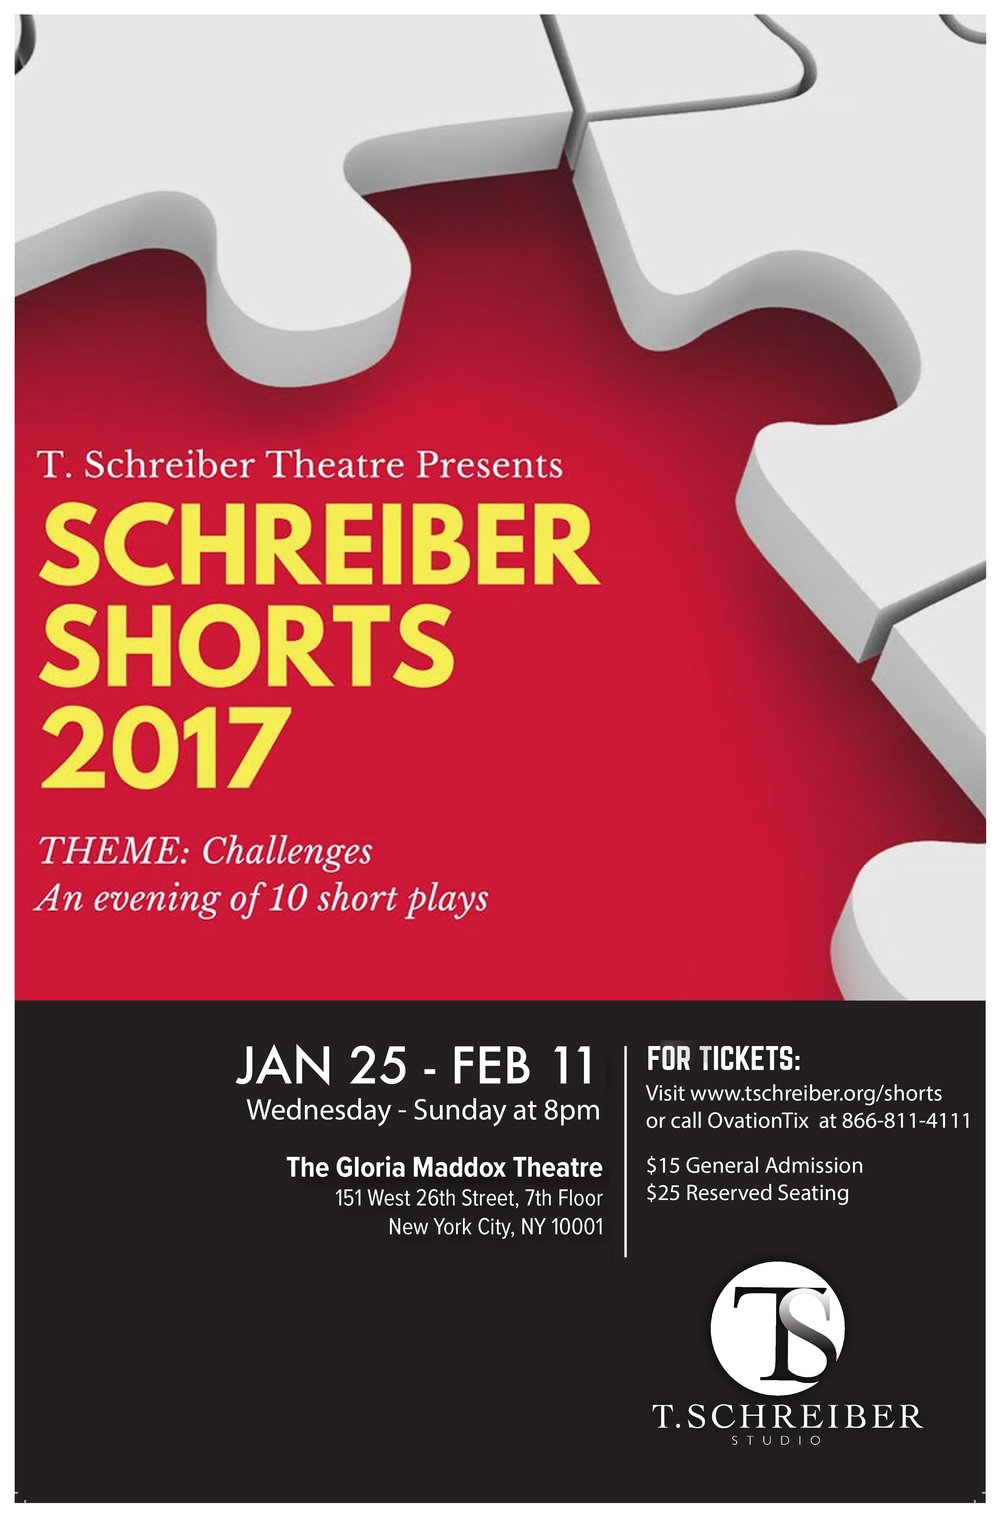 Role: Producer/Director Venue: T. Schreiber Theatre